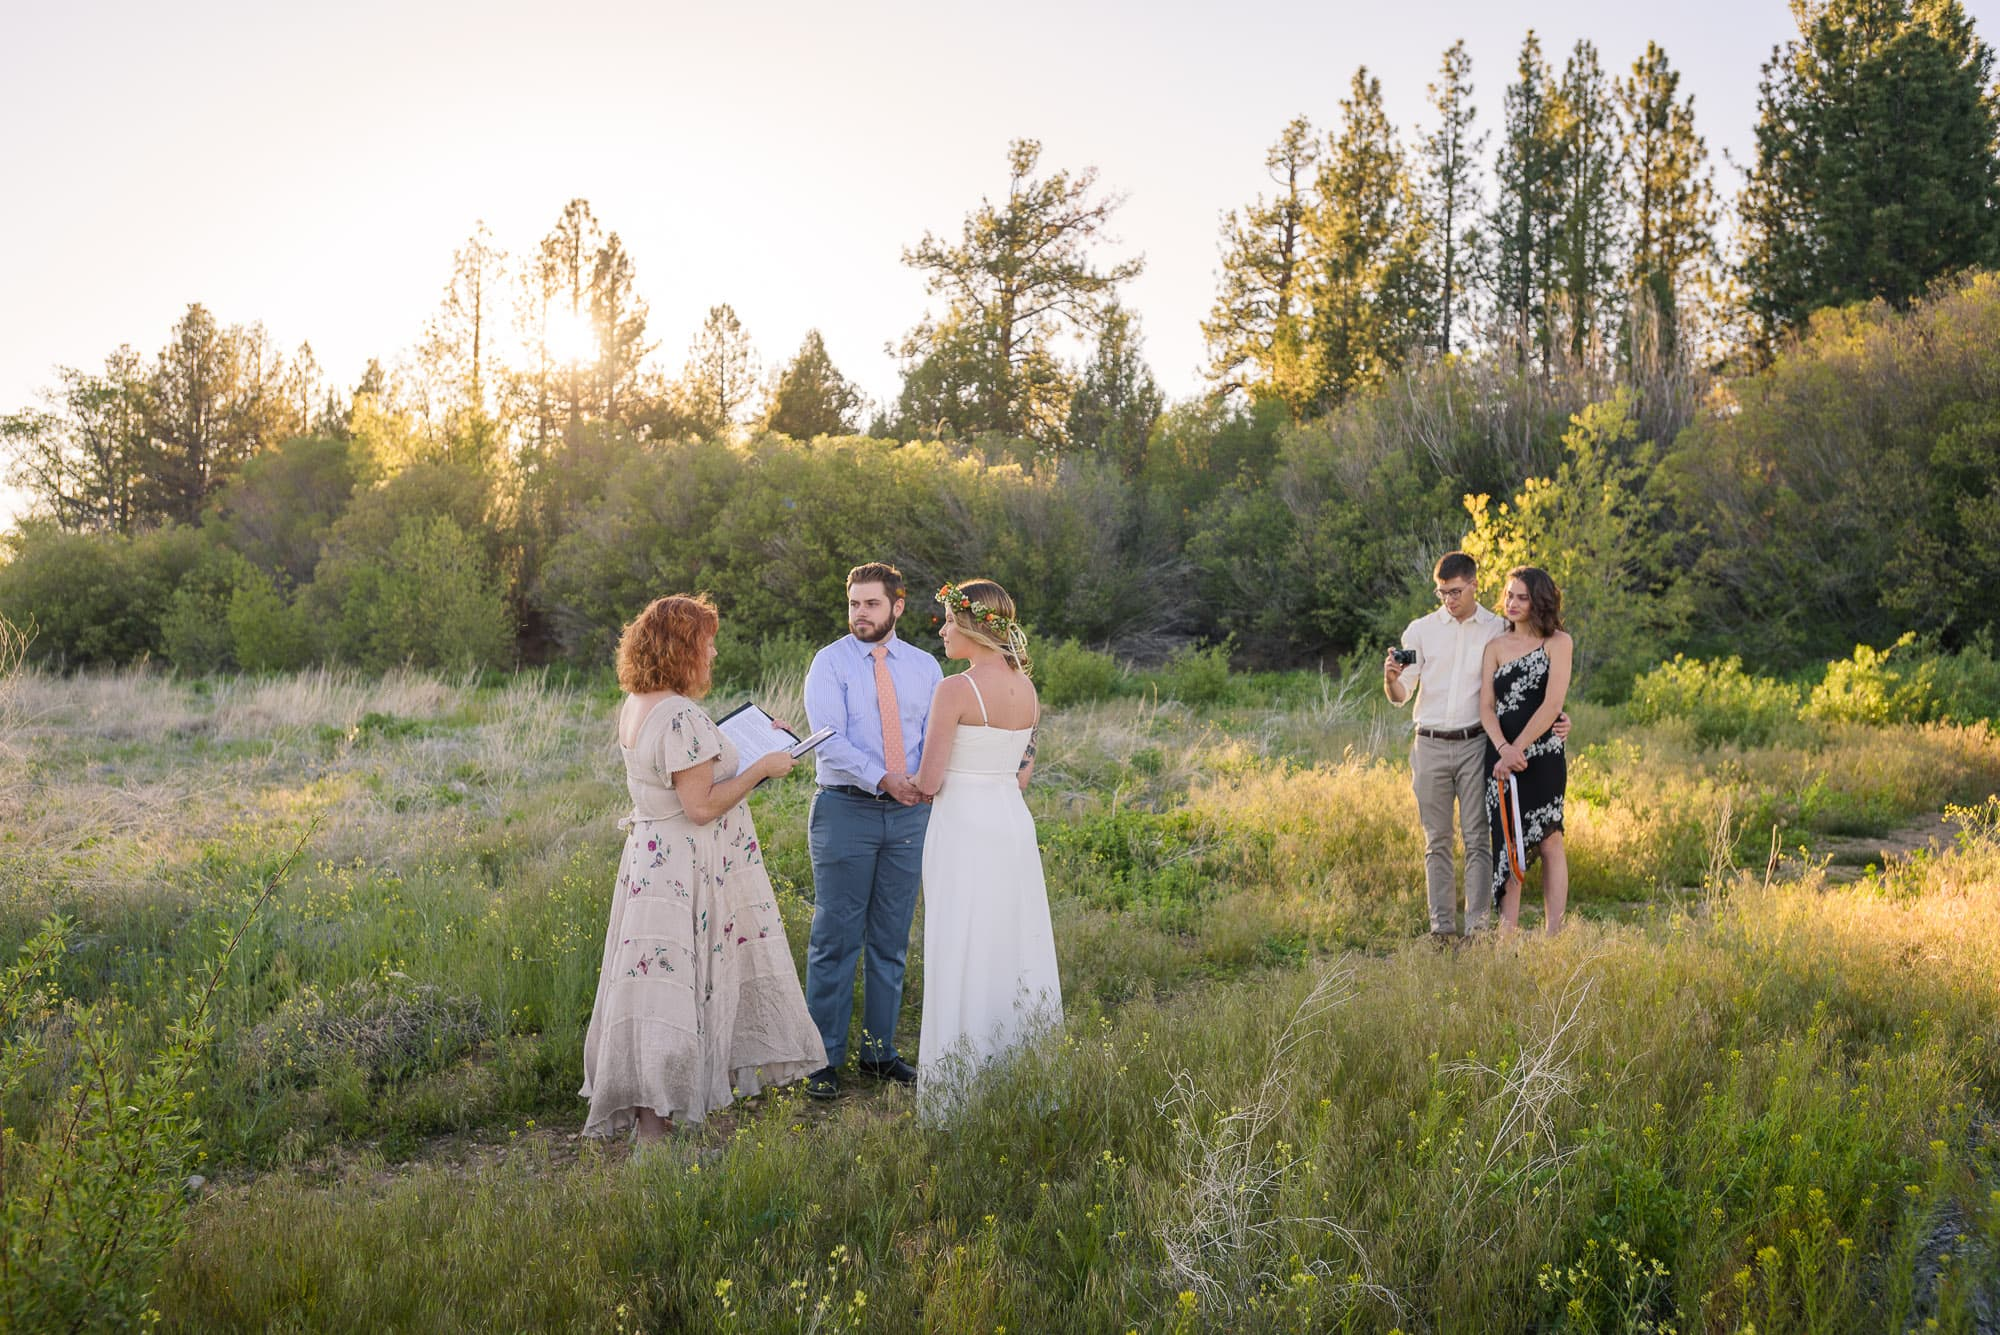 029_Alan_and_Heidi_Kensey_Josh_Big_Bear_Elopement